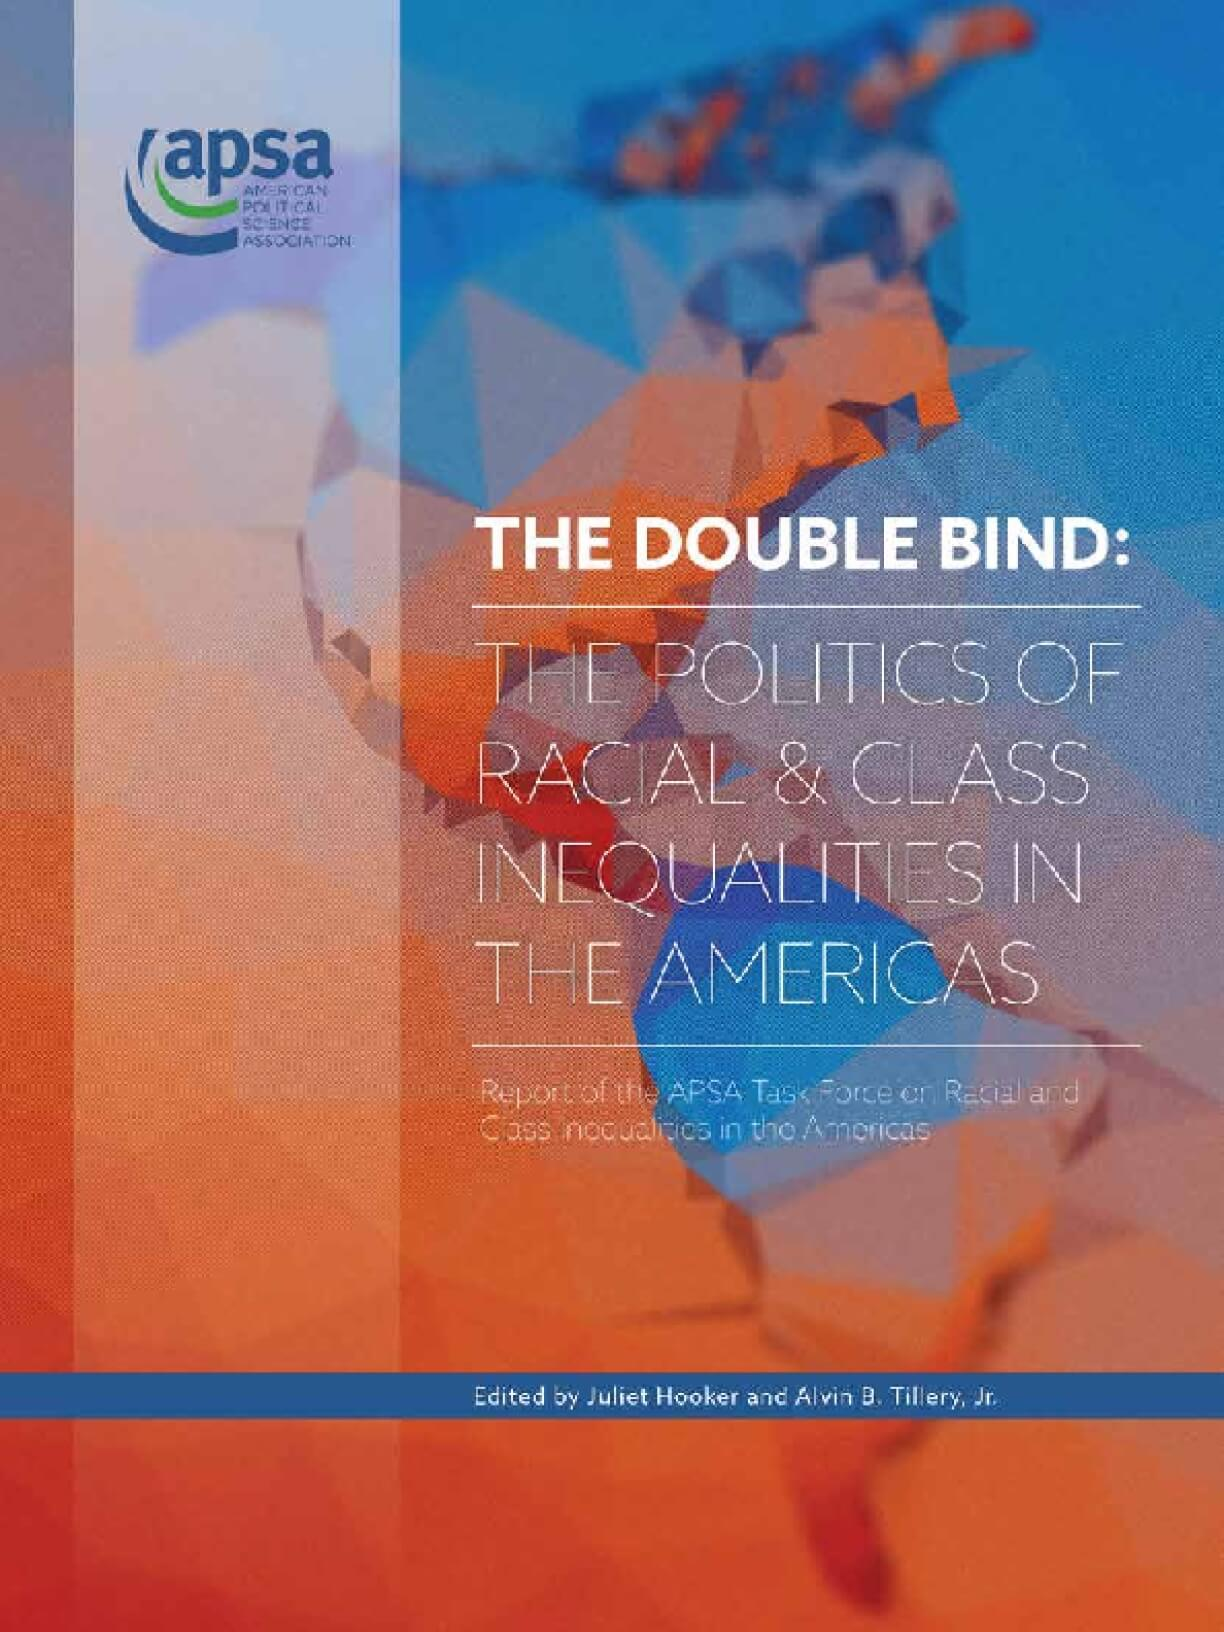 The Double Bind: The Politics of Racial & Class Inequalities in the Americas